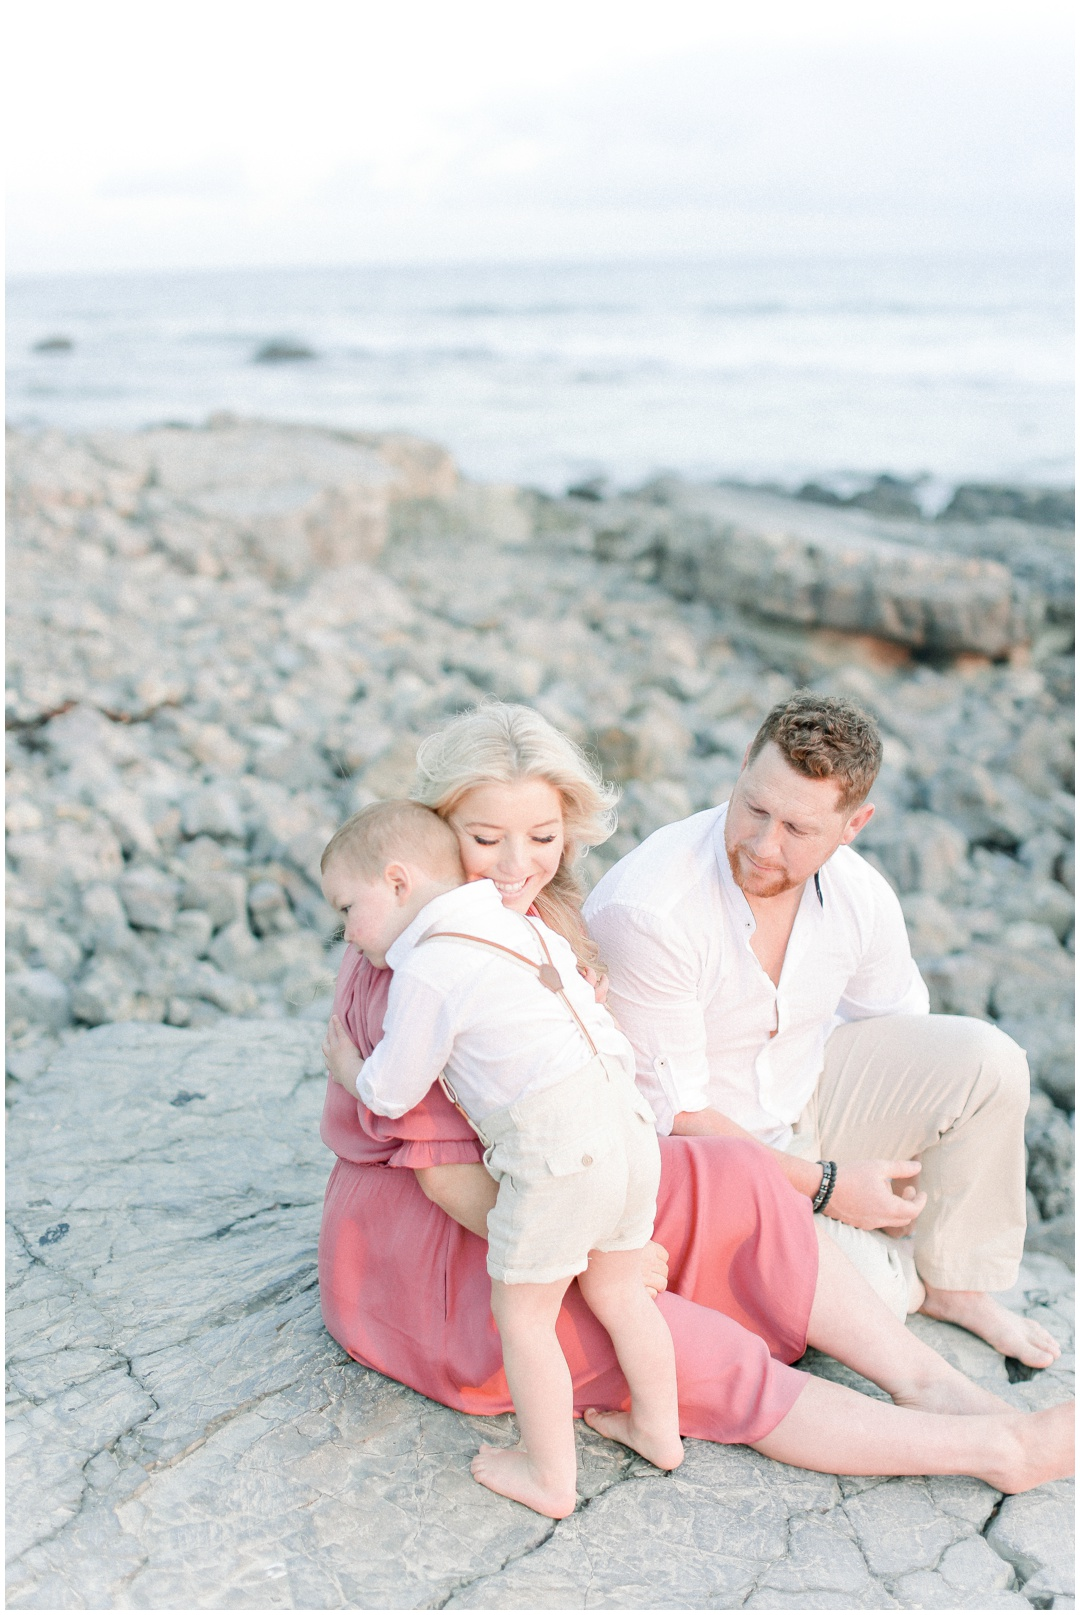 Newport_Beach_Newborn_Light_Airy_Natural_Photographer_Newport_Beach_Photographer_Orange_County_Family_Photographer_Cori_Kleckner_Photography_Newport_Beach_Photographer_Maternity_kole_calhoun56_kole_calhoun_Jennifer_Calhoun_Knox_Calhoun_3725.jpg